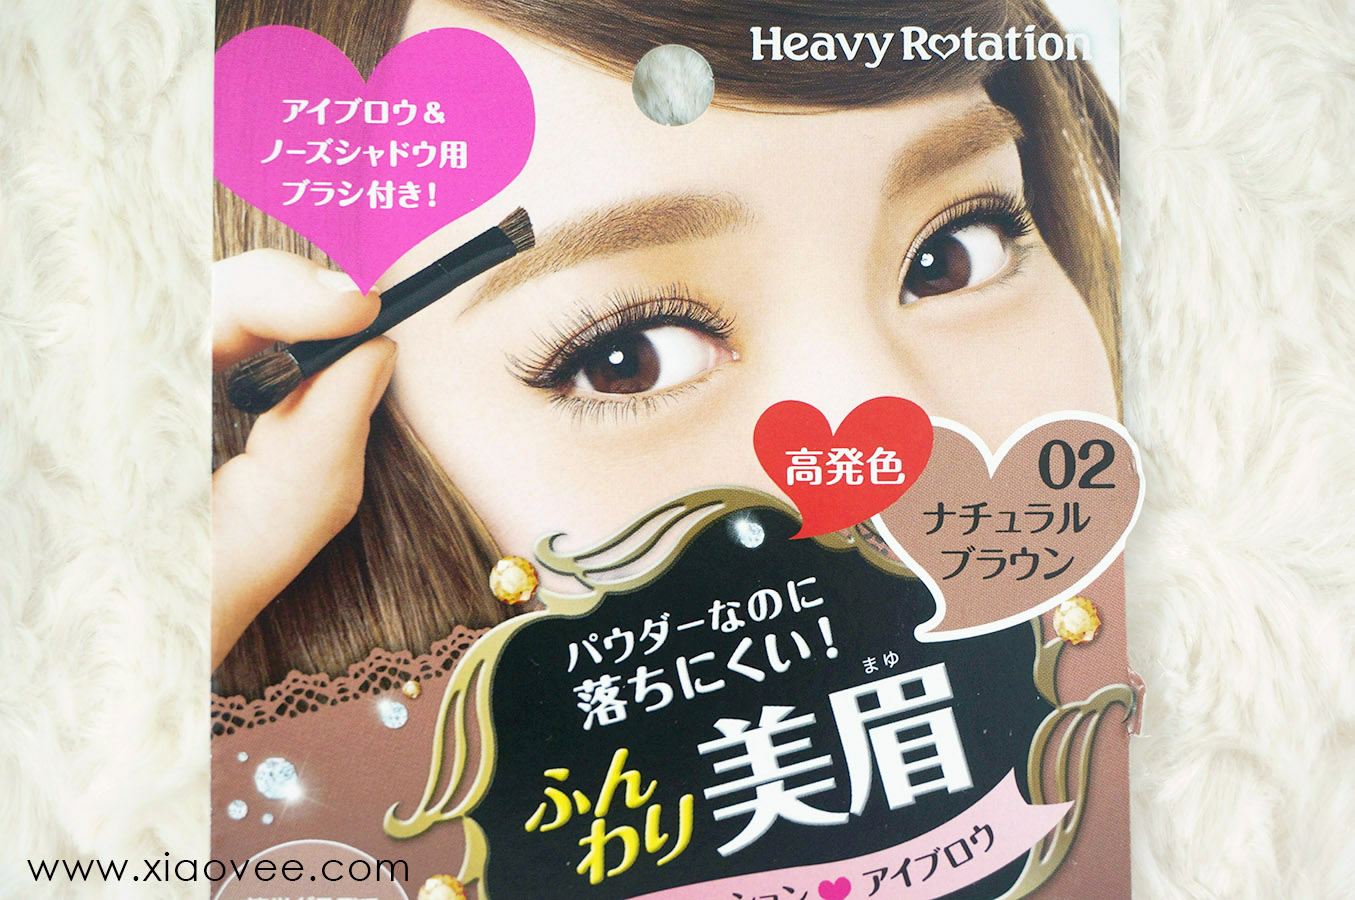 heavy rotation, kiss me heavy rotation powder eyebrow nose shadow, multipurpose Japanese cosmetic